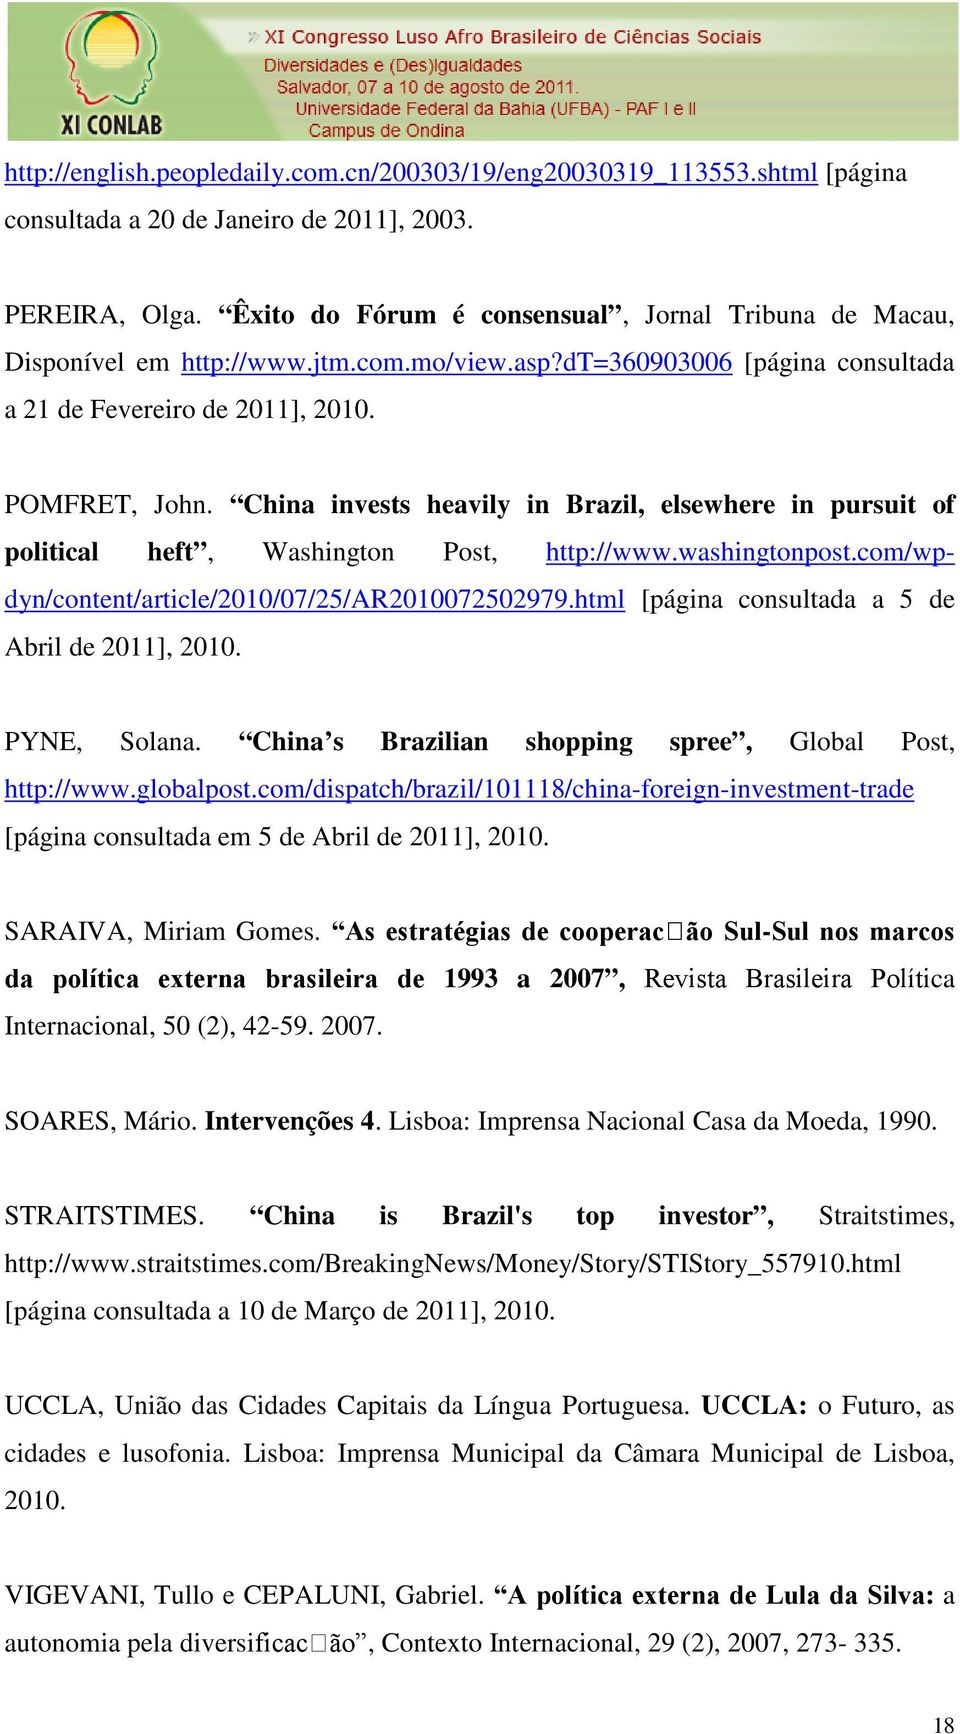 China invests heavily in Brazil, elsewhere in pursuit of political heft, Washington Post, http://www.washingtonpost.com/wpdyn/content/article/2010/07/25/ar2010072502979.